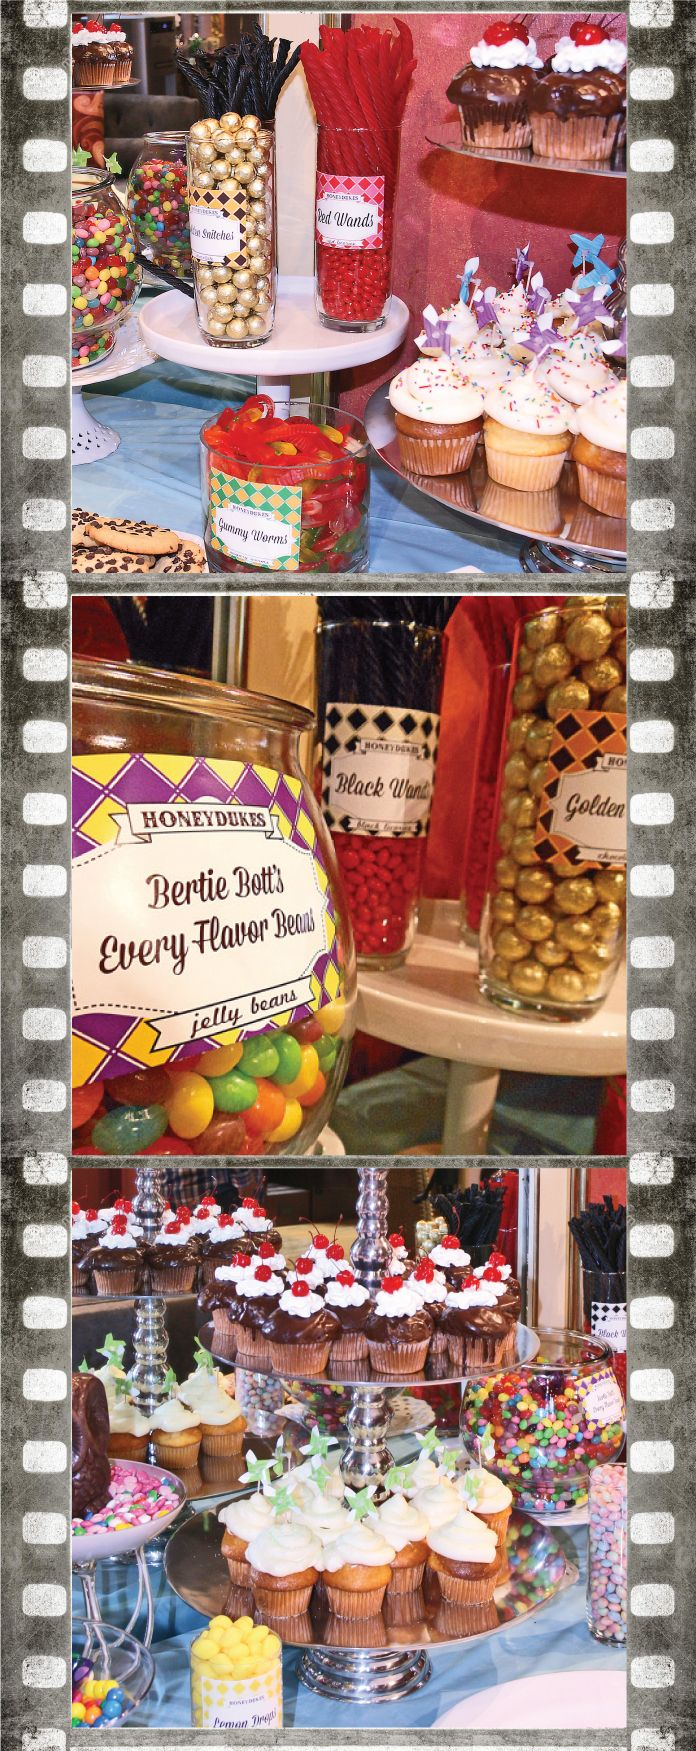 Honeydukes dessert bar for our Harry Potter Party at Mojo Spa! See more behind the scenes